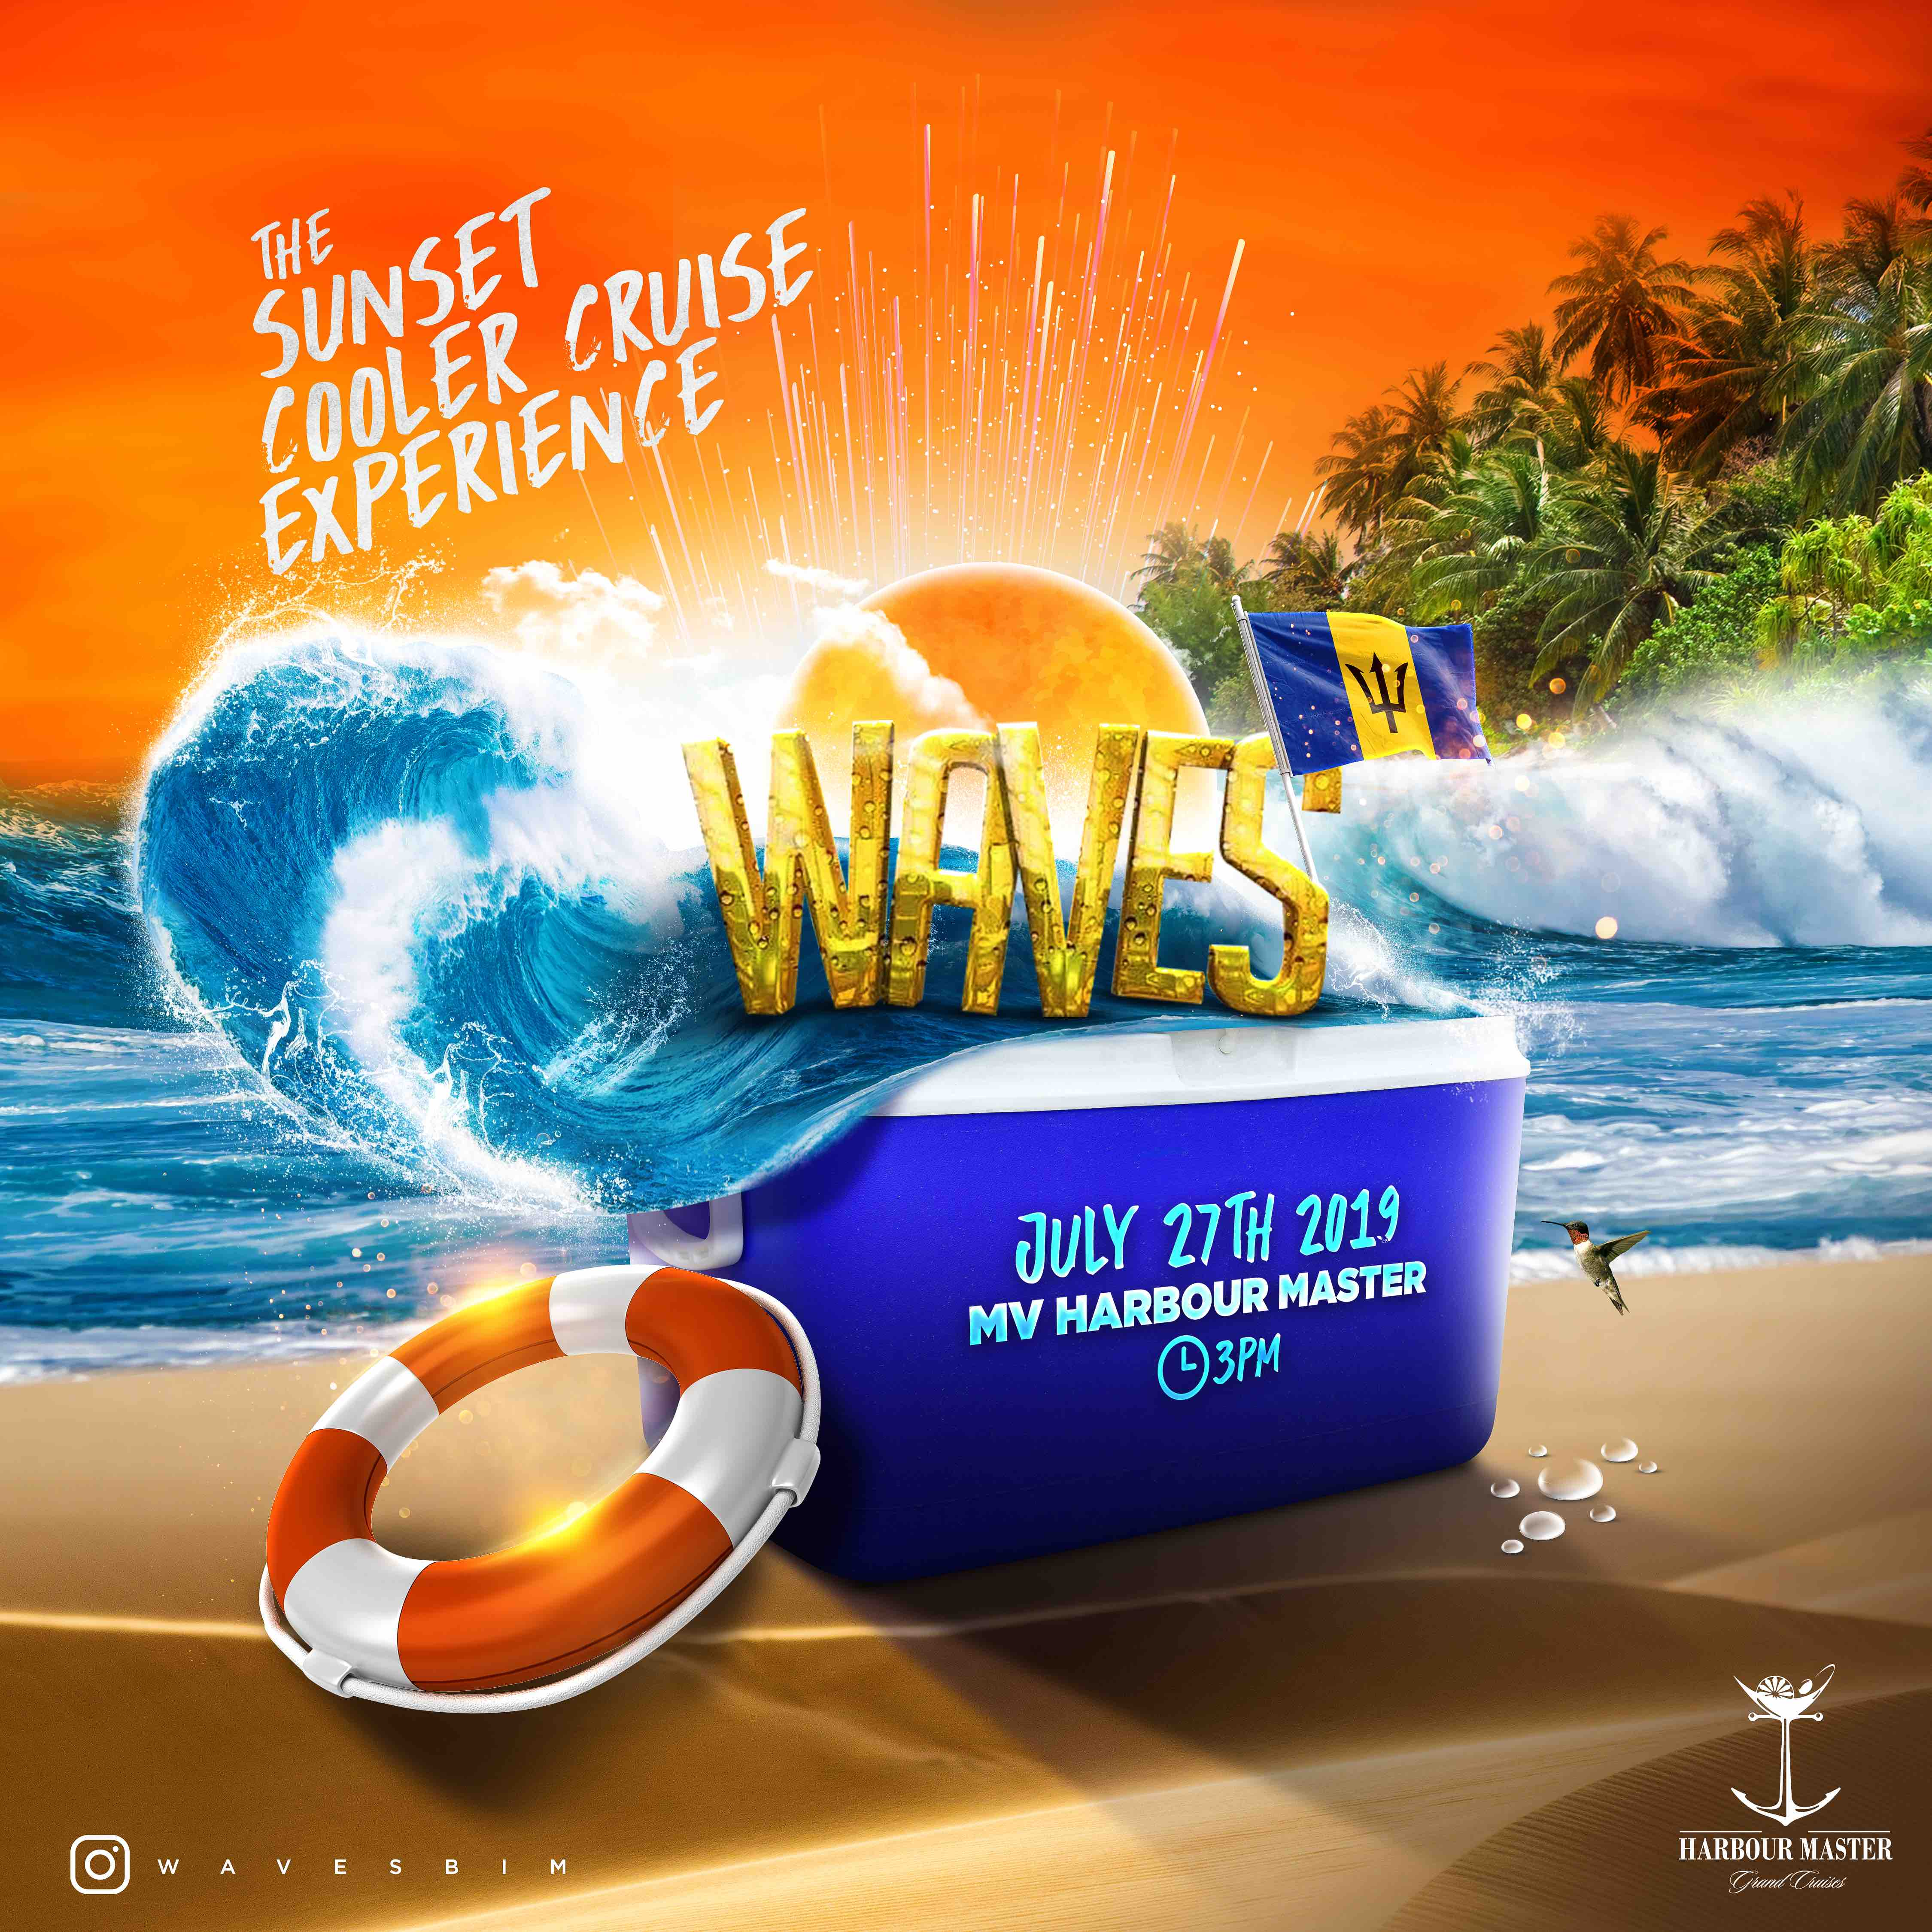 Tickets for WAVES : The Sunset Cooler Cruise Experience in Bridgetown from Ready Tickets Inc